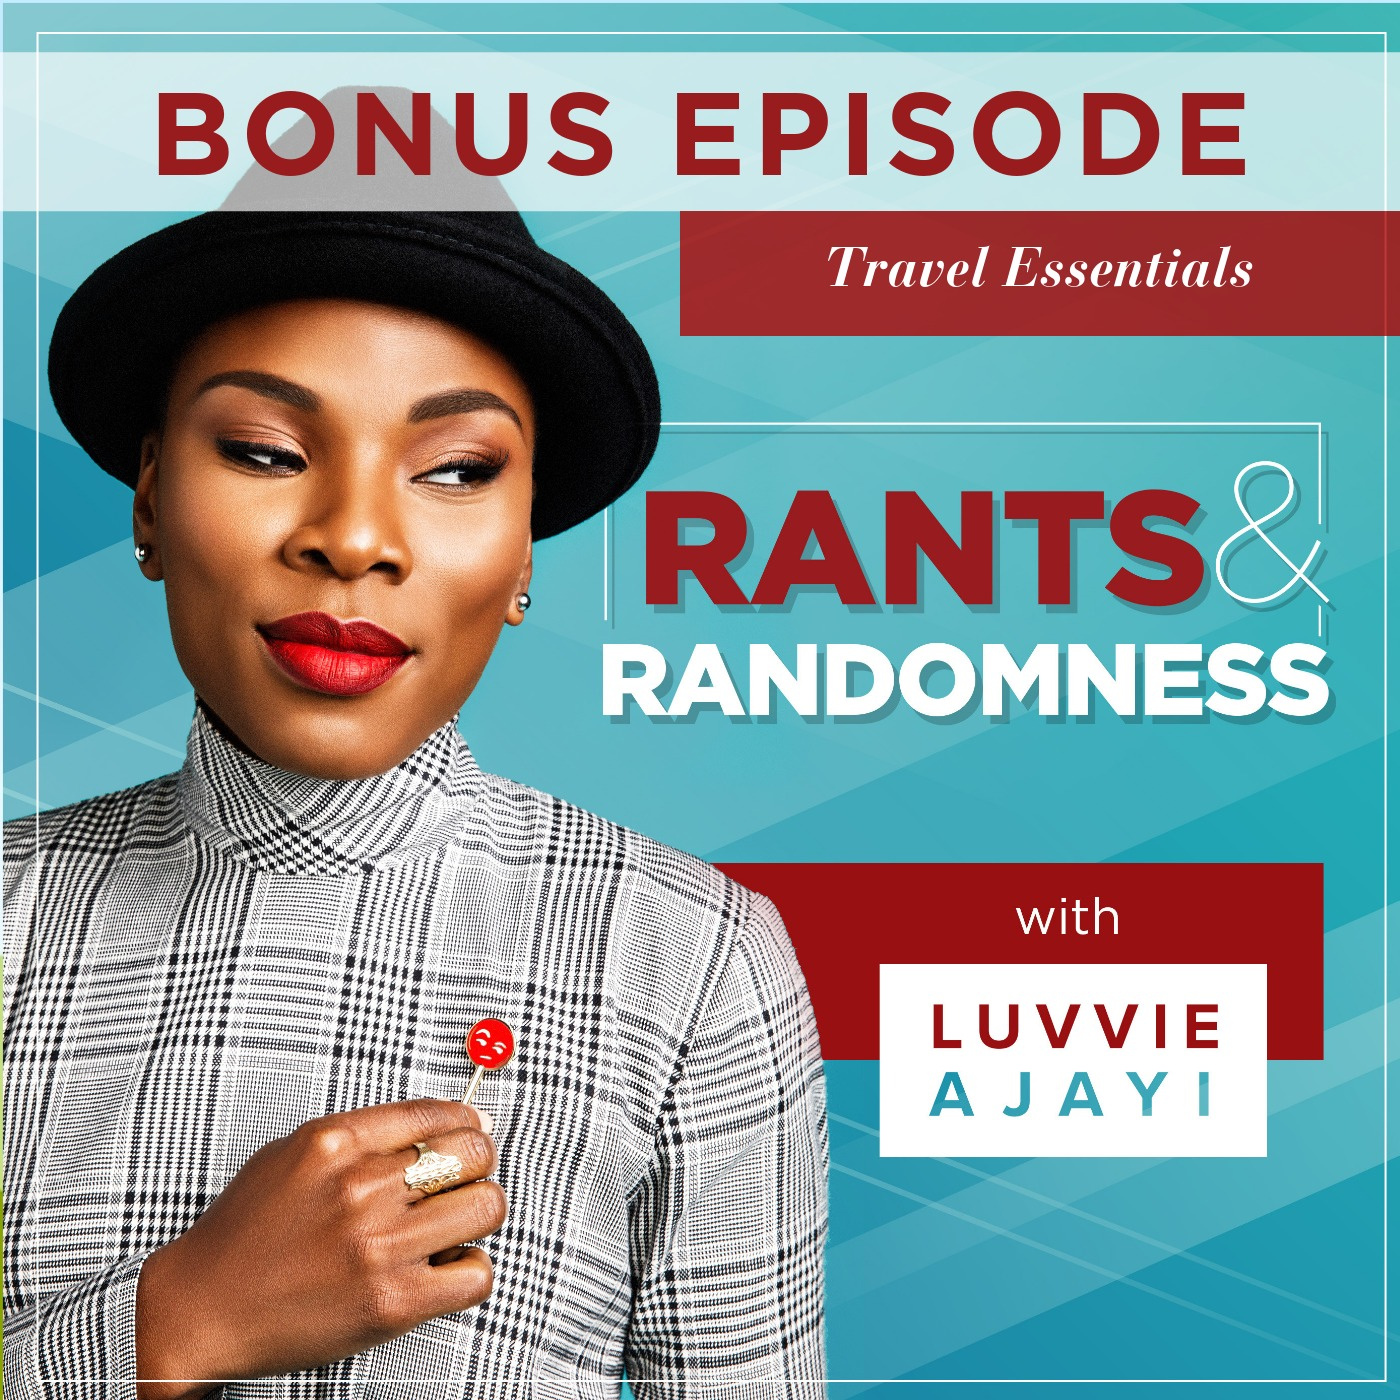 Travel Essentials - BONUS Episode 7